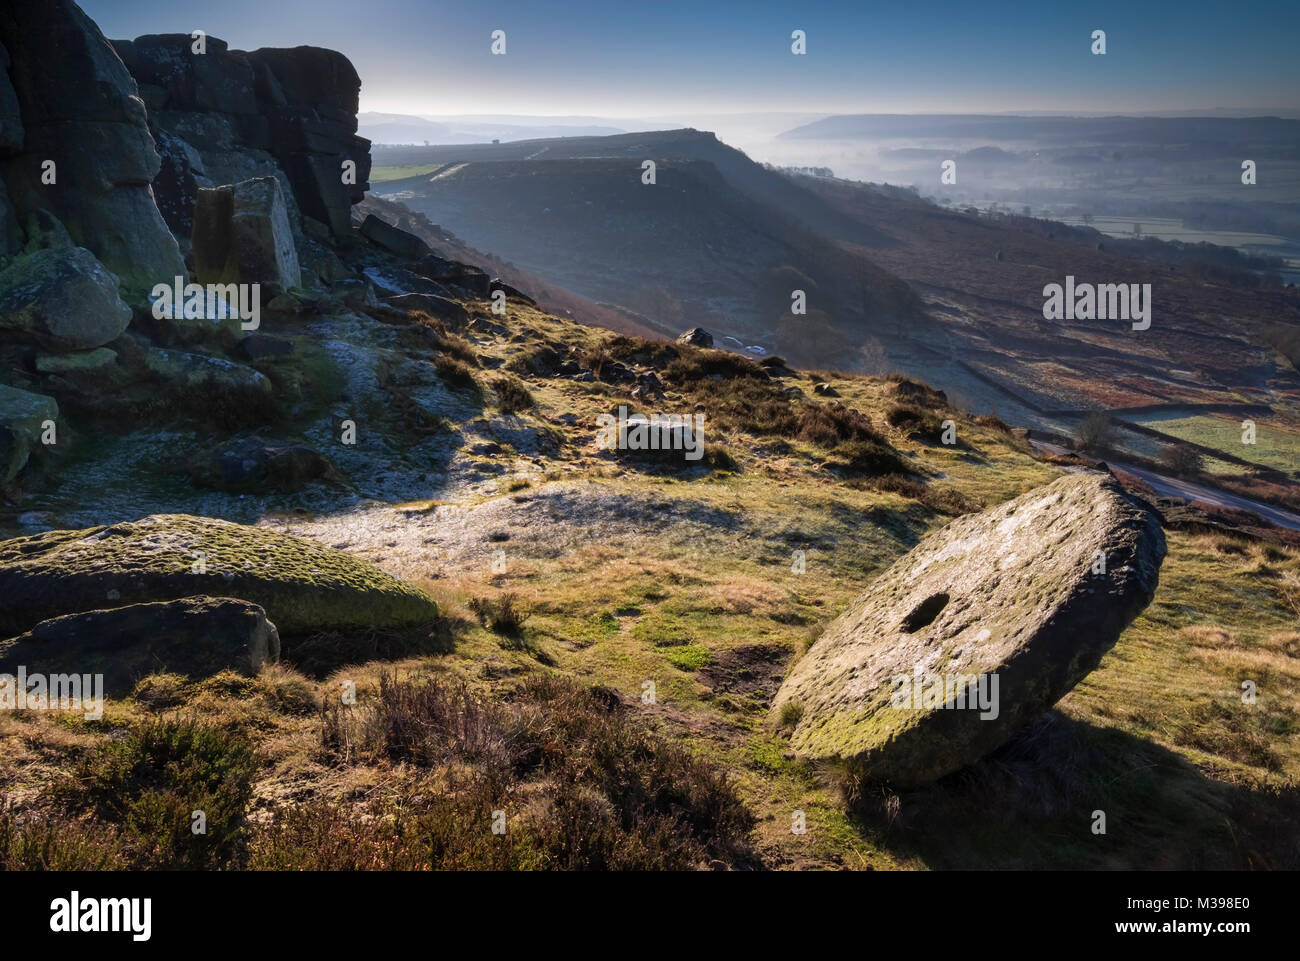 Abandoned Millstone on Curbar Edge in winter, Peak District National Park, Derbyshire, England, UK - Stock Image